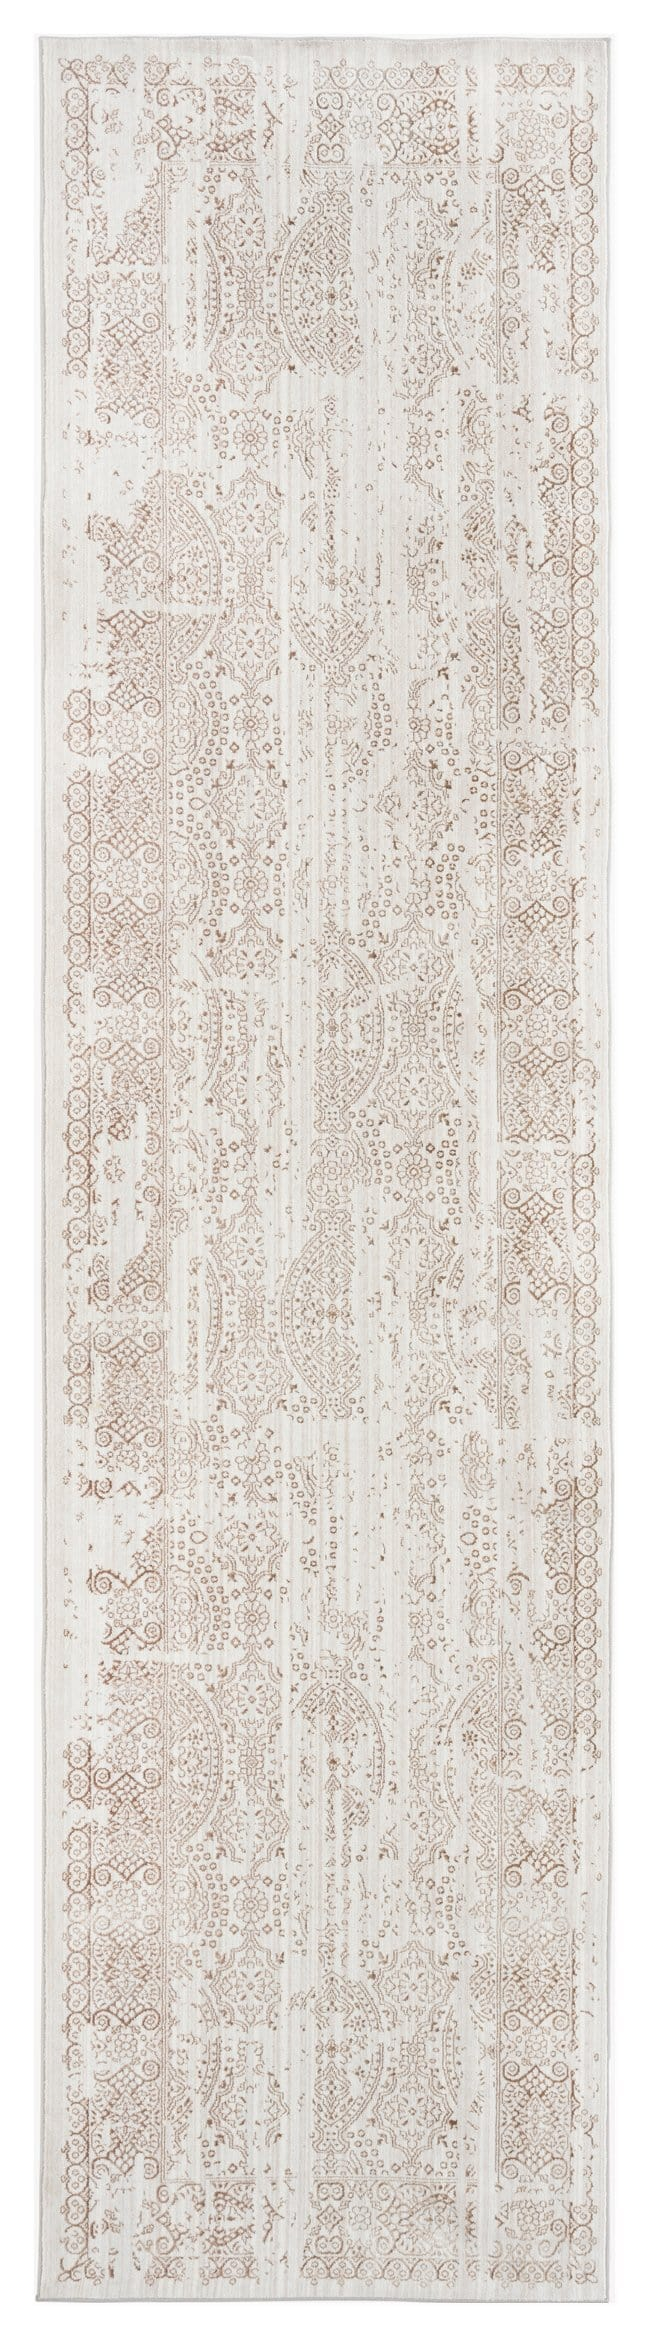 Amelia Cream Brown and Silver Traditional Floral Runner Rug